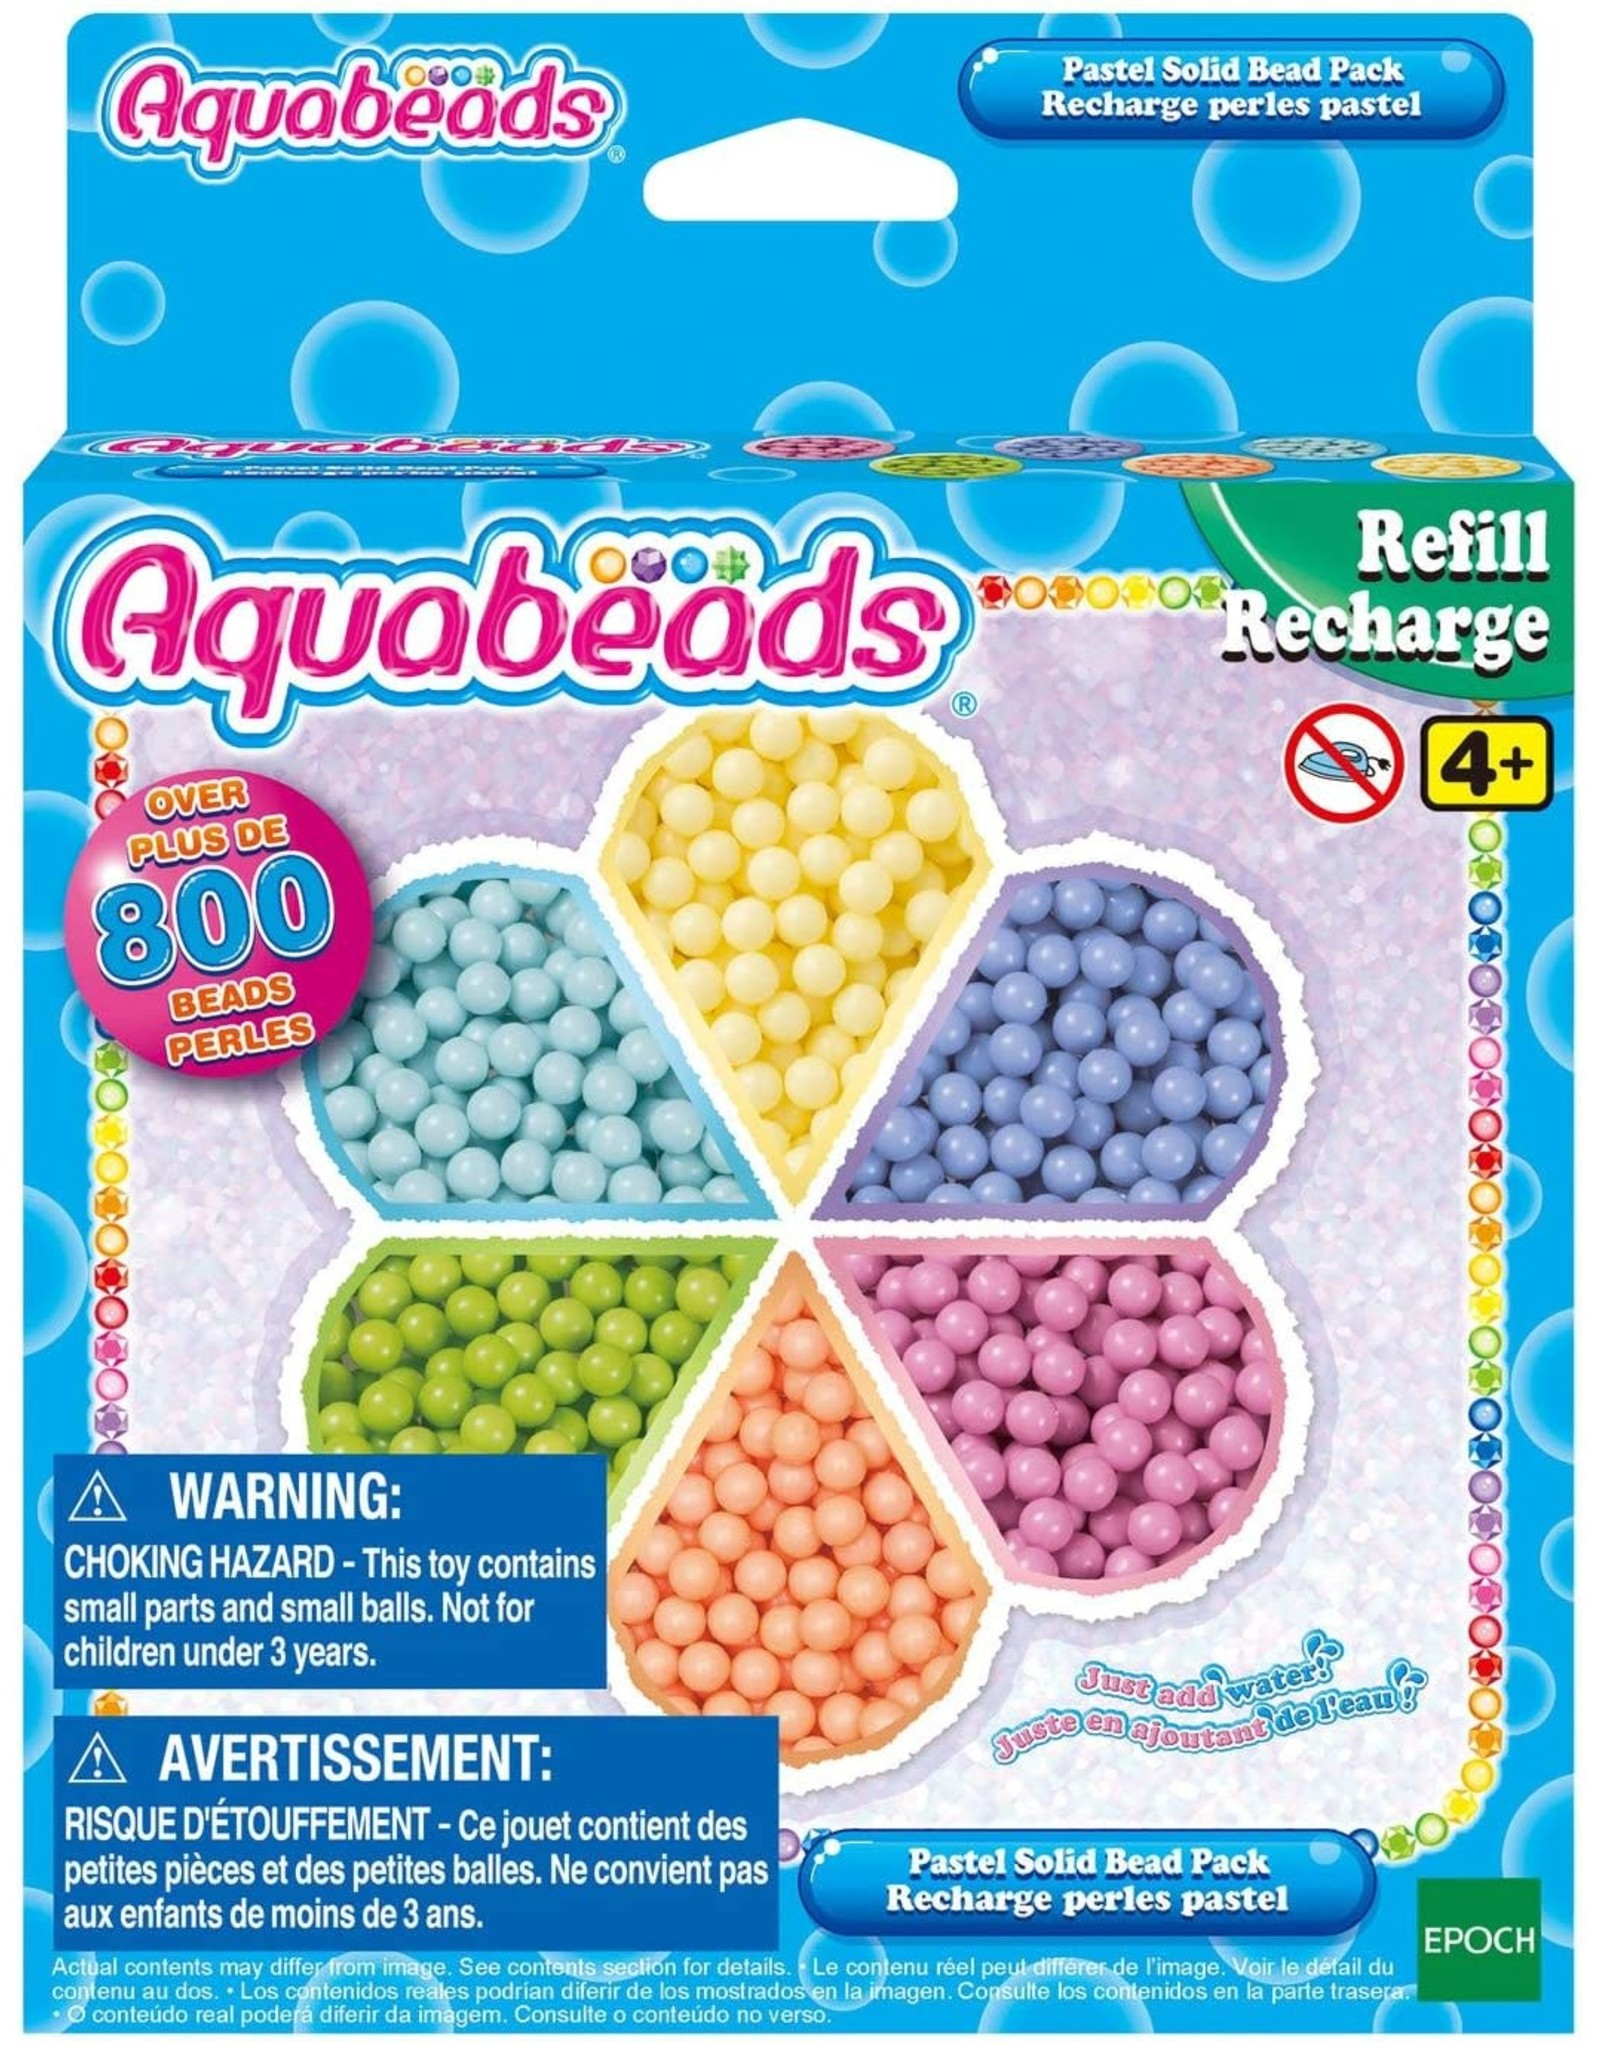 Aquabeads Aquabeads Pastel Solid Bead Refill Pack